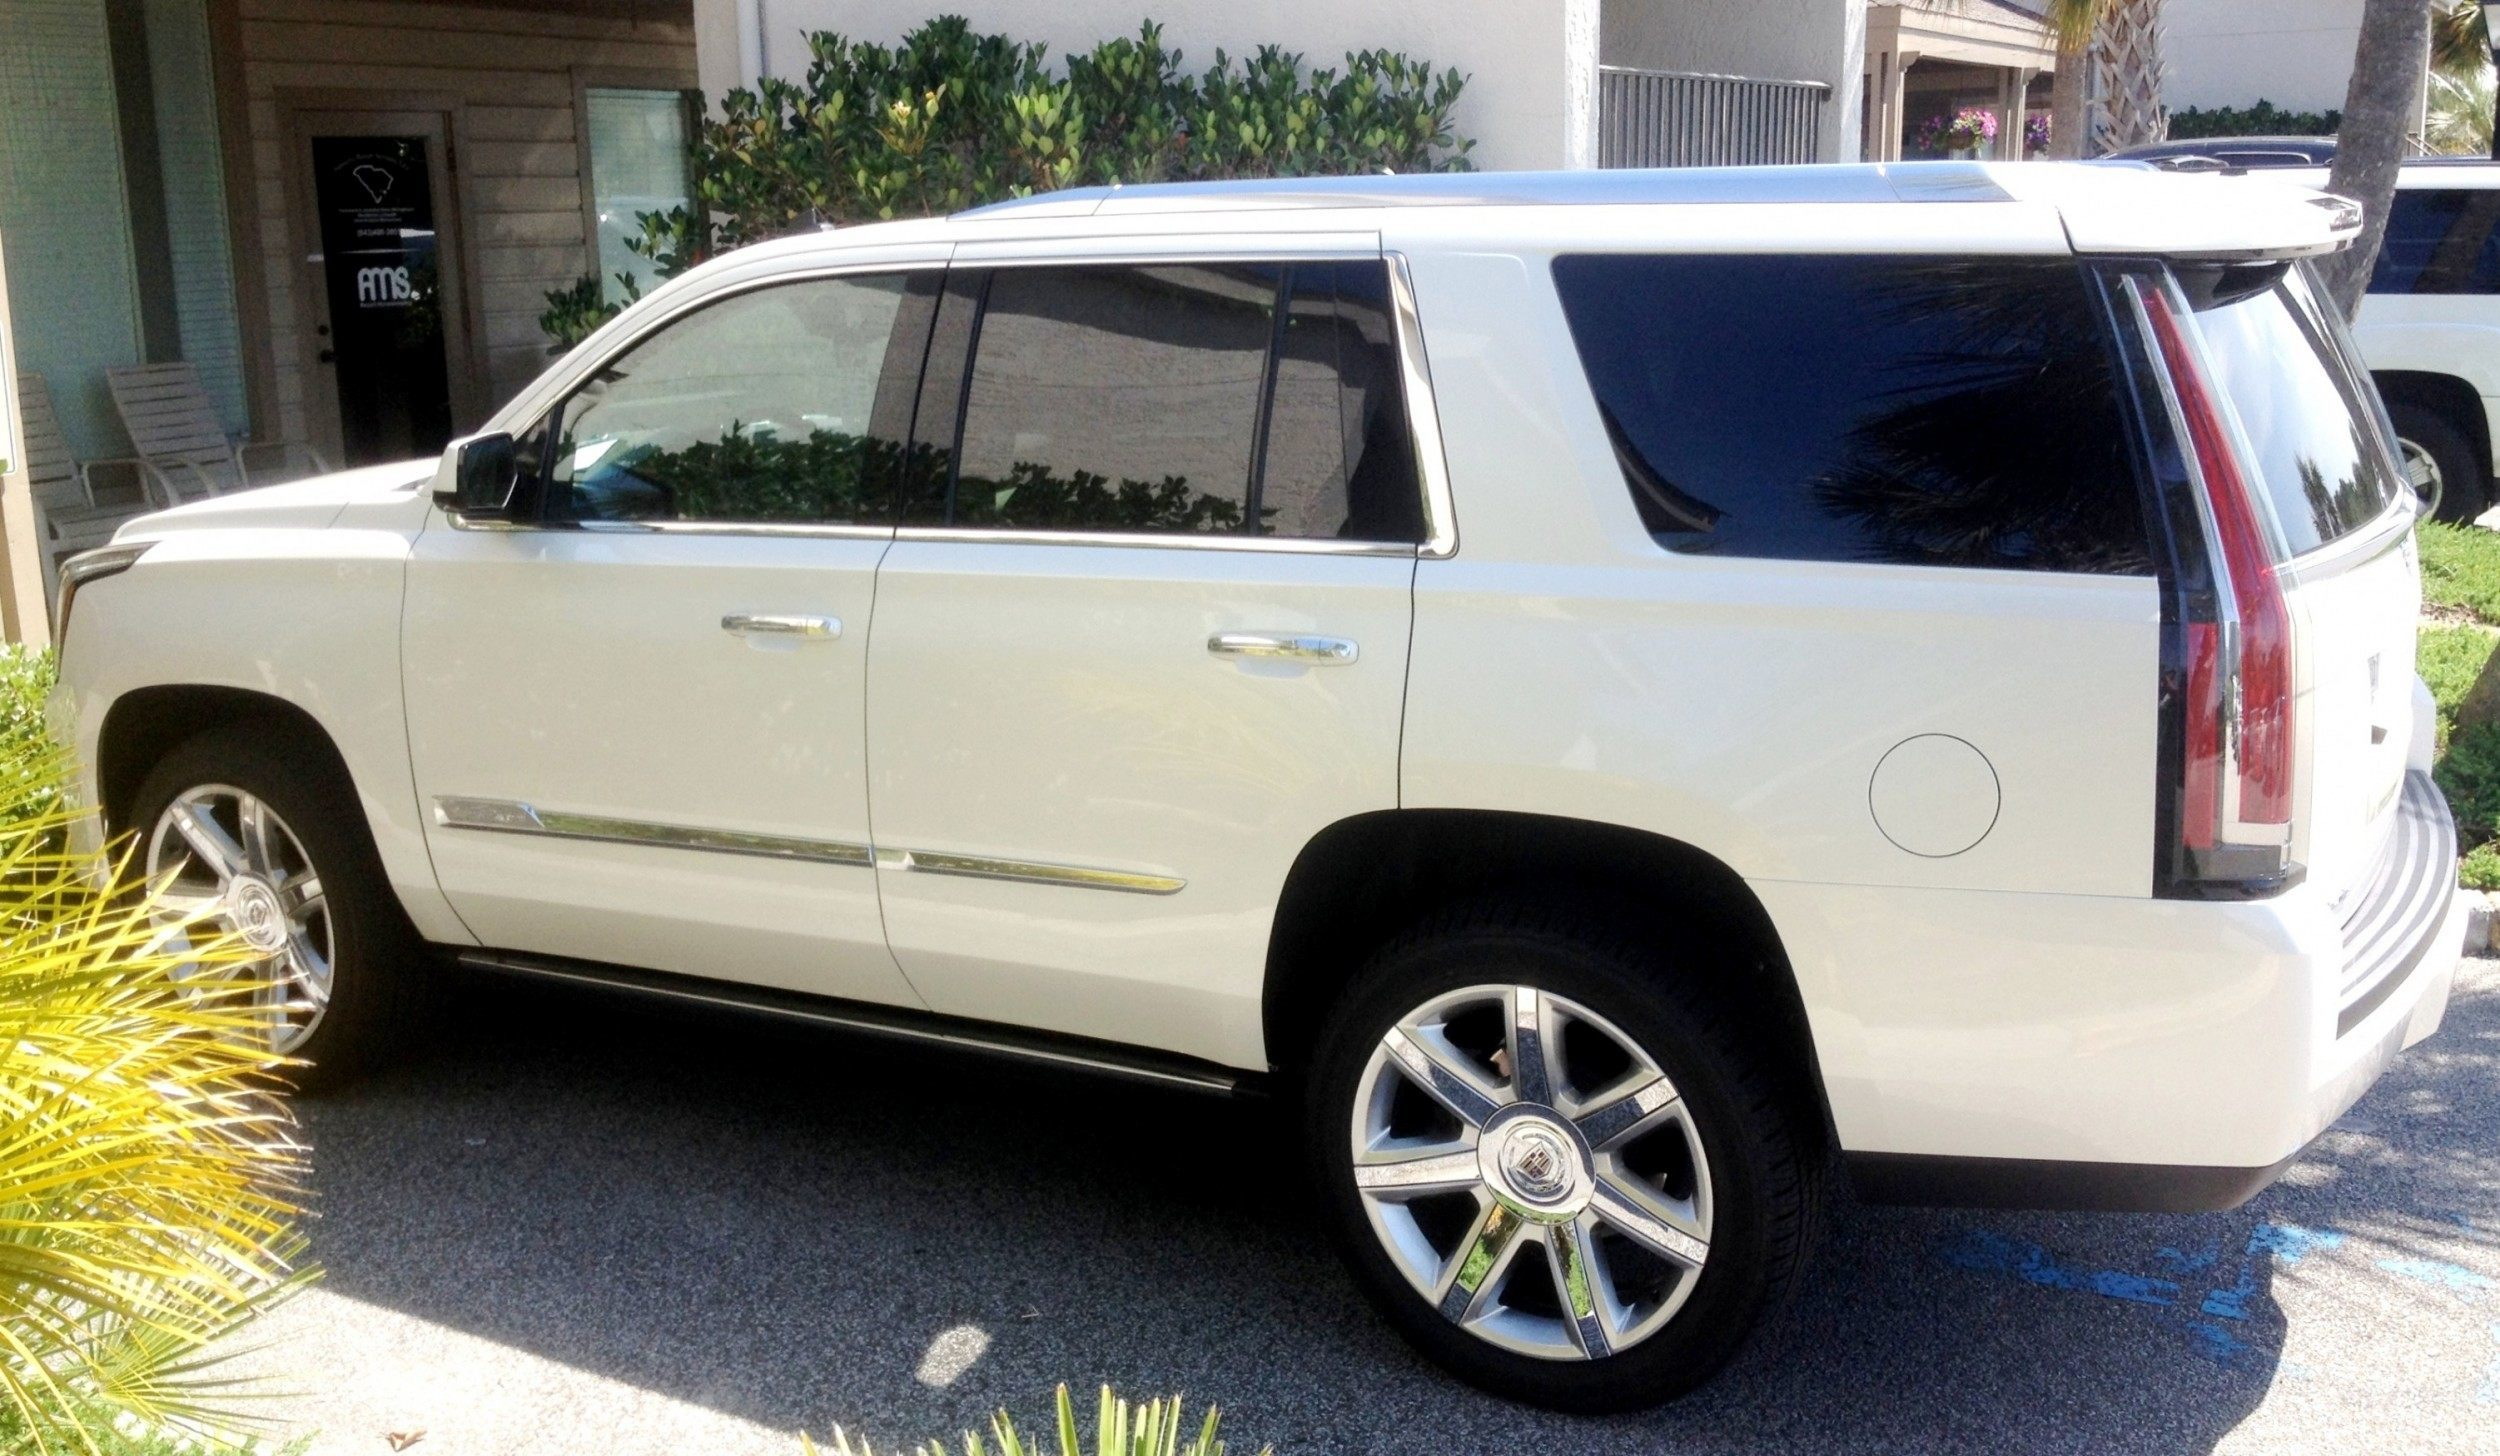 Update1 new photos 2015 cadillac escalade majors on interior upgrades leathers colors for Cadillac escalade interior colors